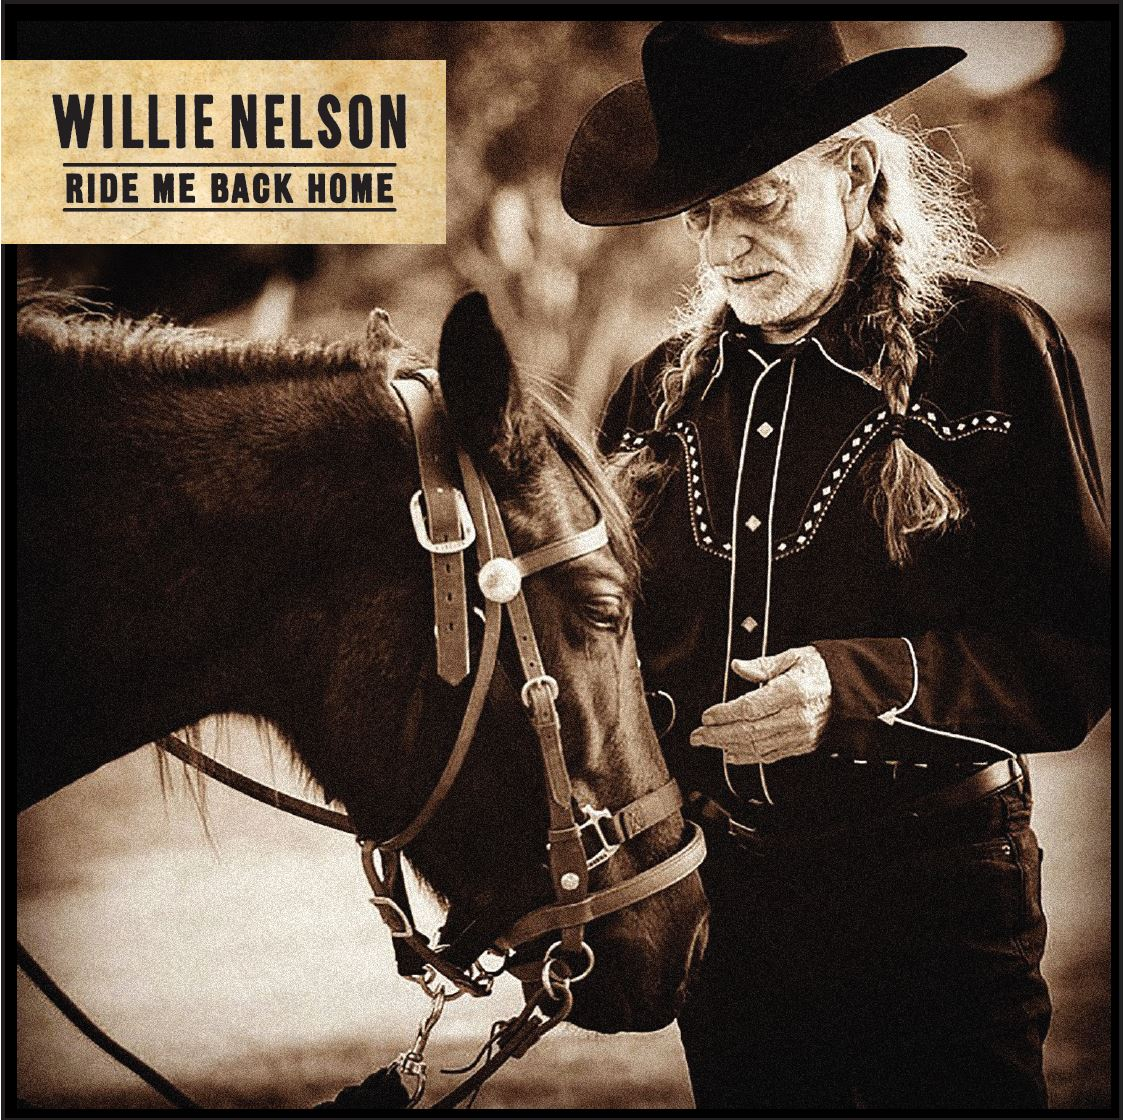 Willie Nelson's New Album 'Ride Me Back Home': See Details